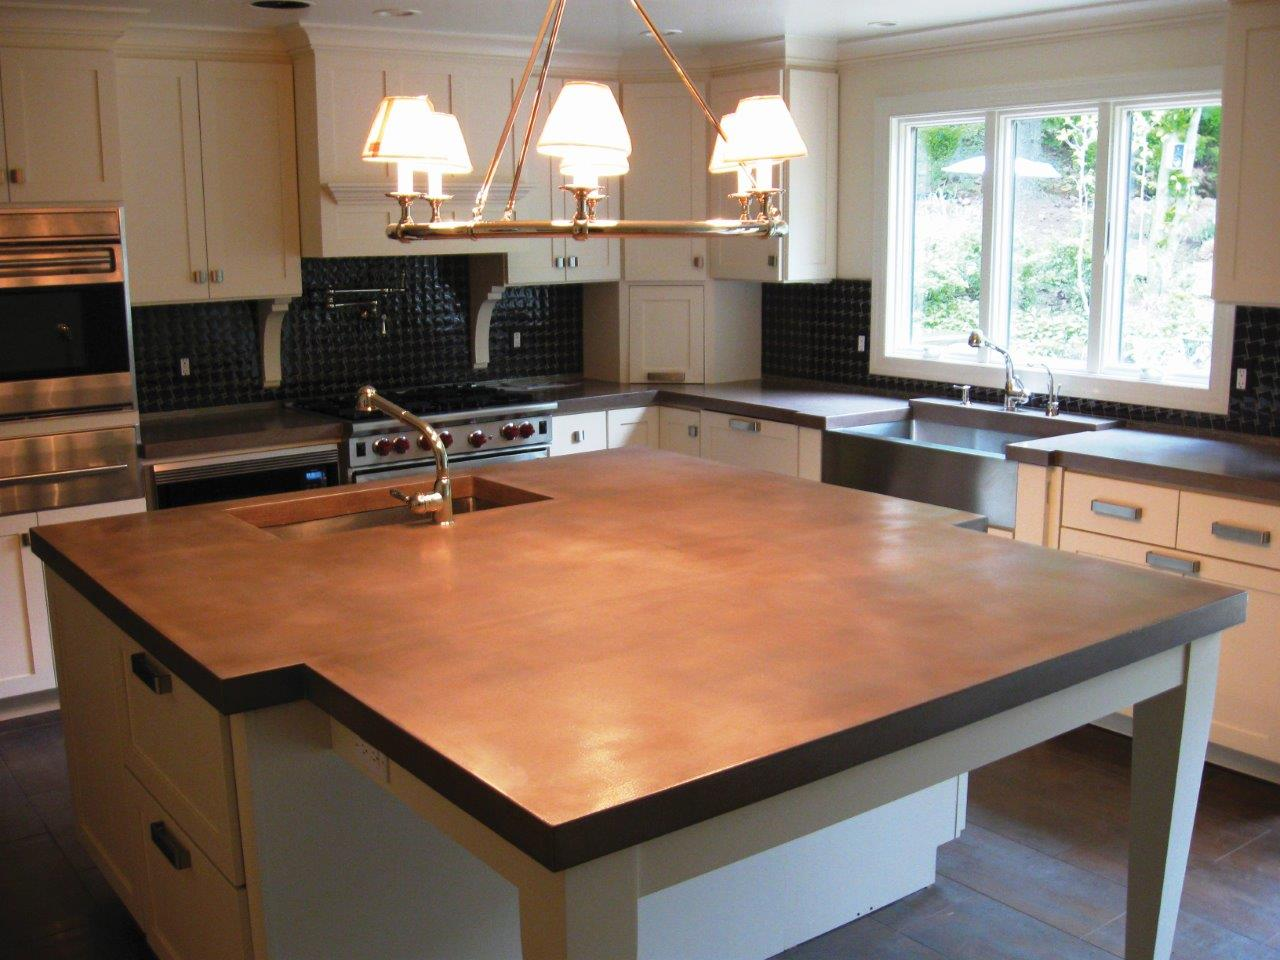 Concrete Countertops Mn Very Larg Cast Concrete Countertop Island Stained With Brown Stain